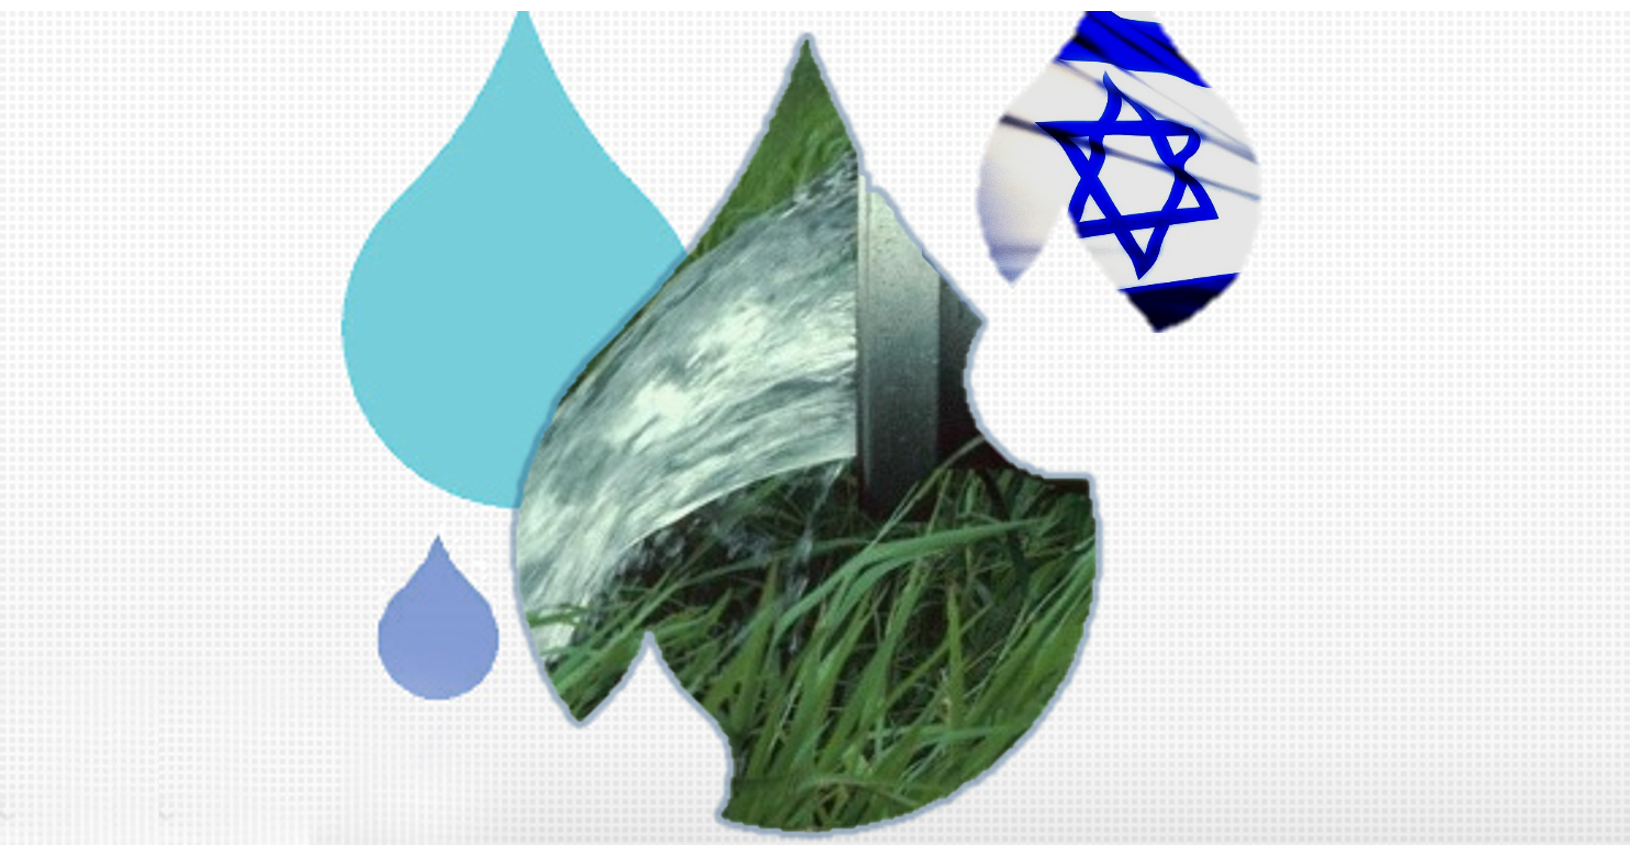 Dripping with innovation: 5 Israeli water tech companies changing the world